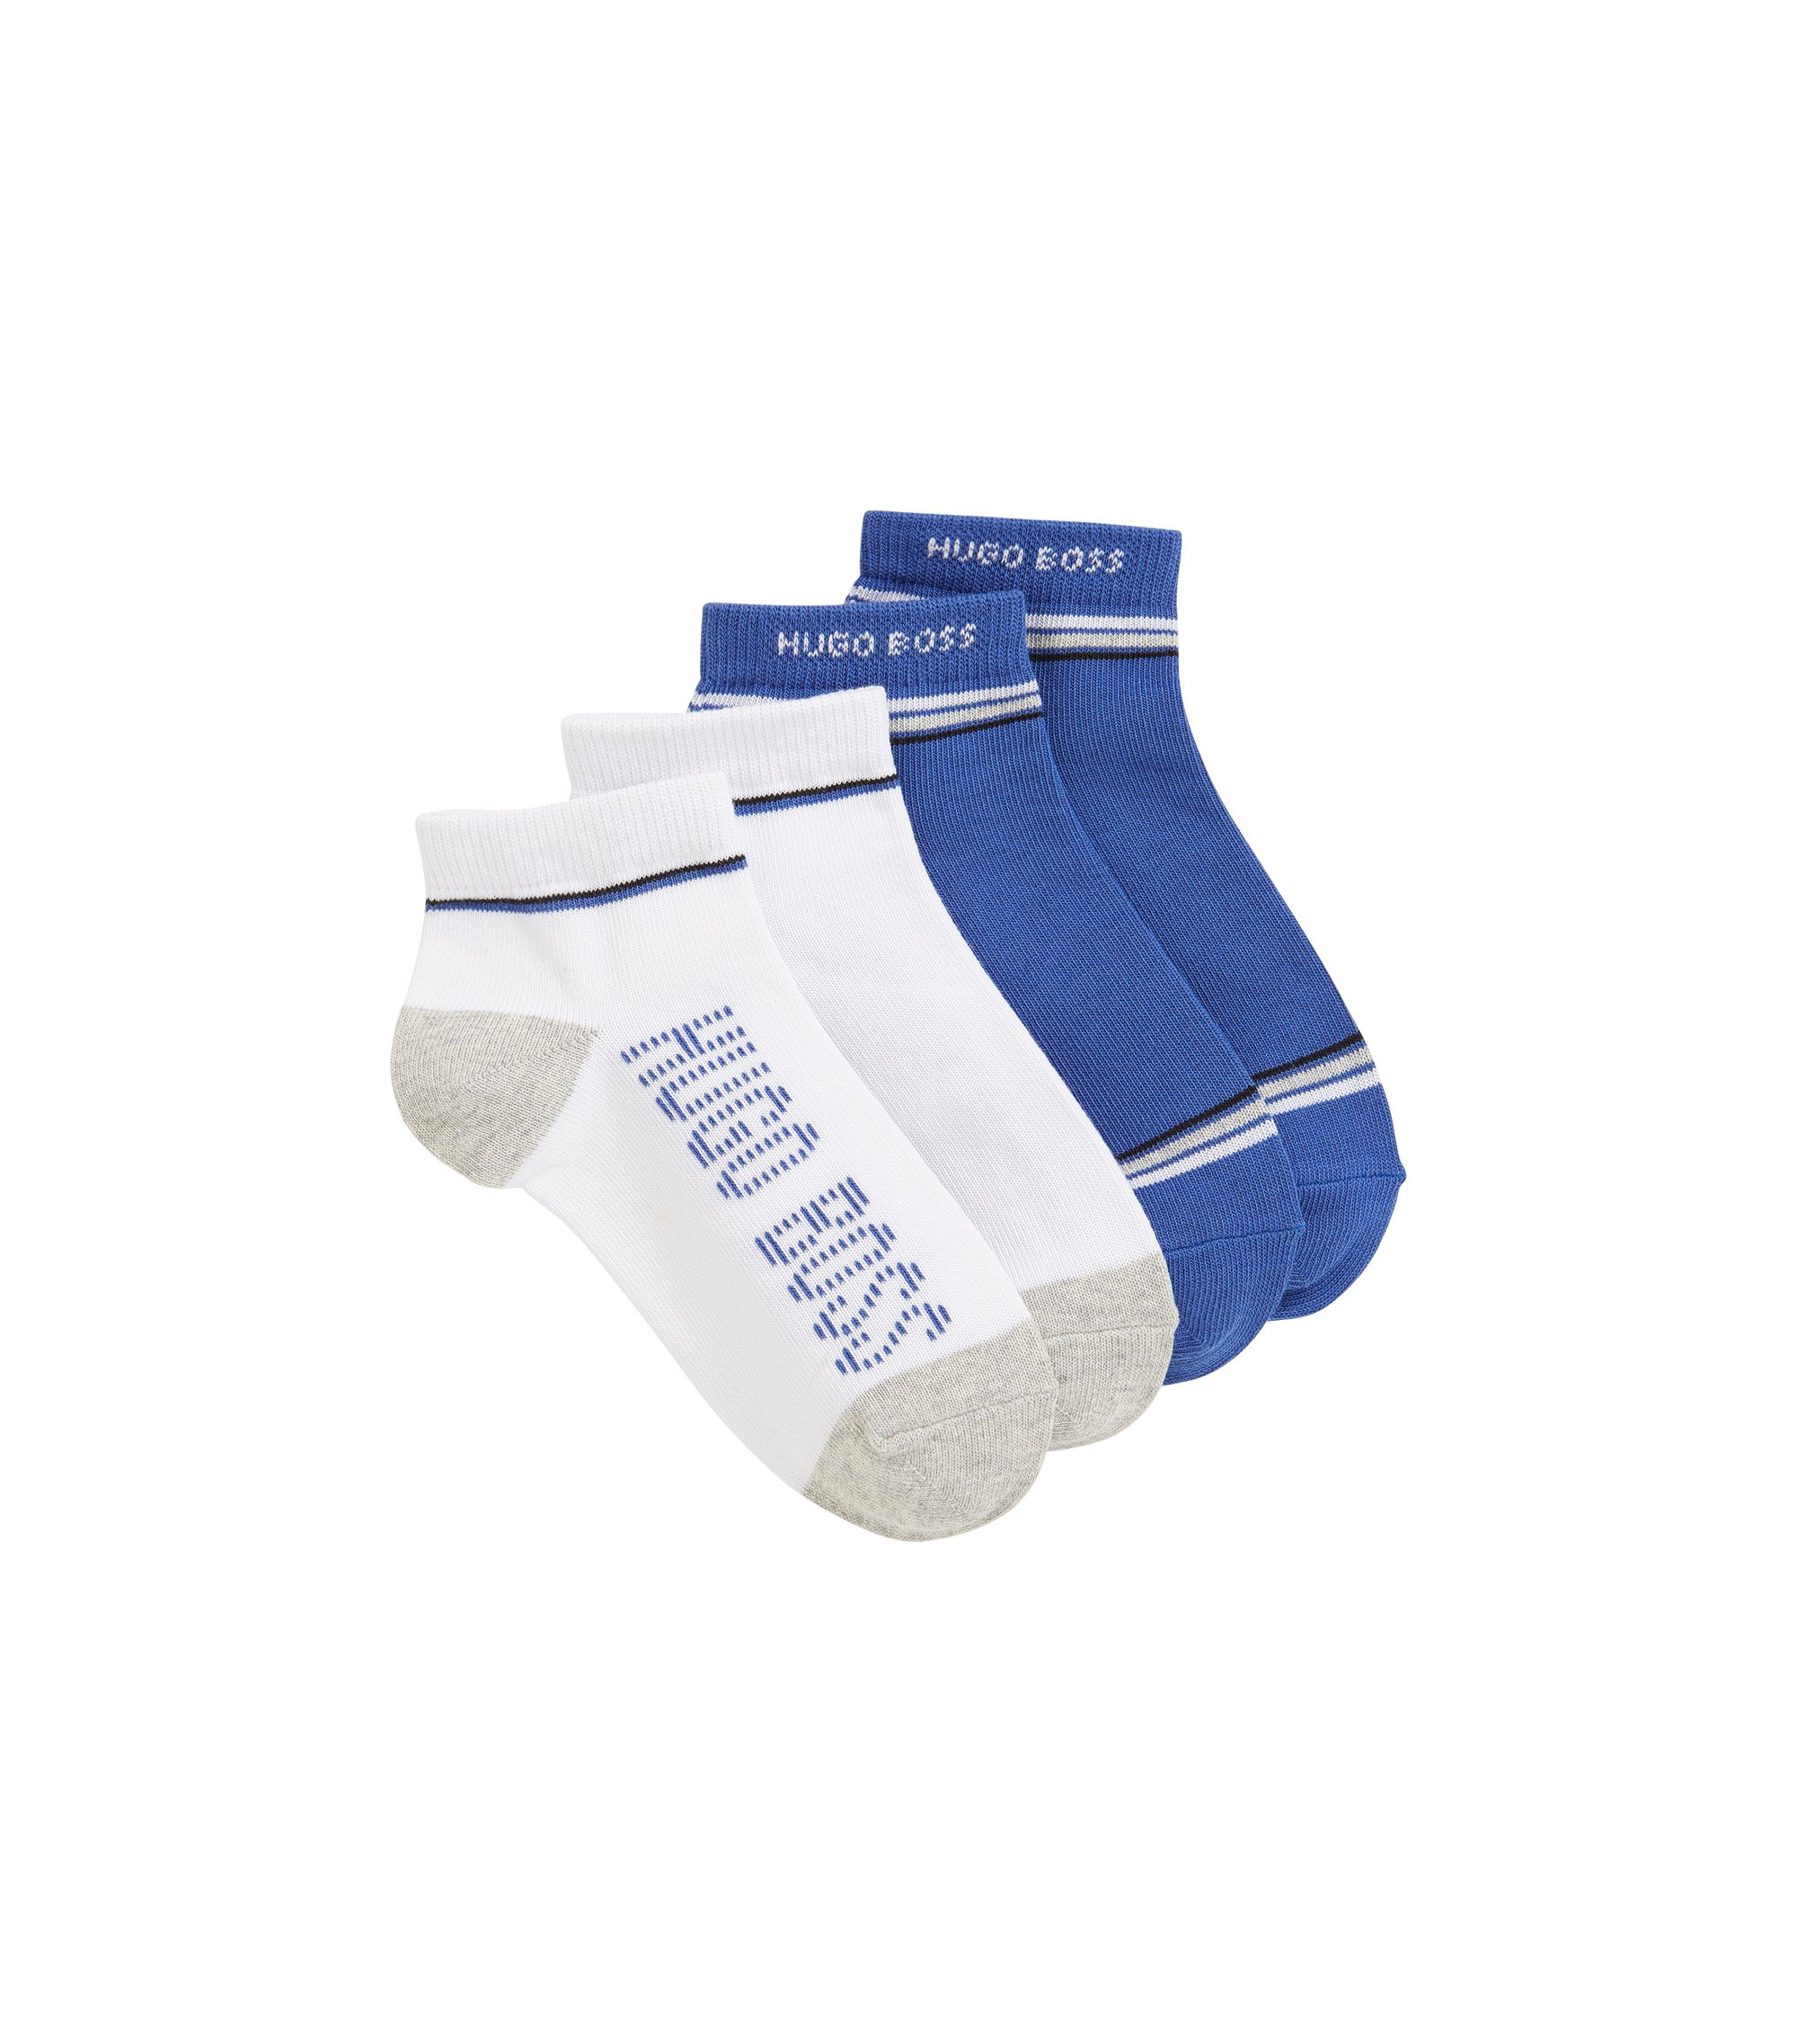 Kids' two-pack of ankle socks in a stretch-cotton blend, Patterned